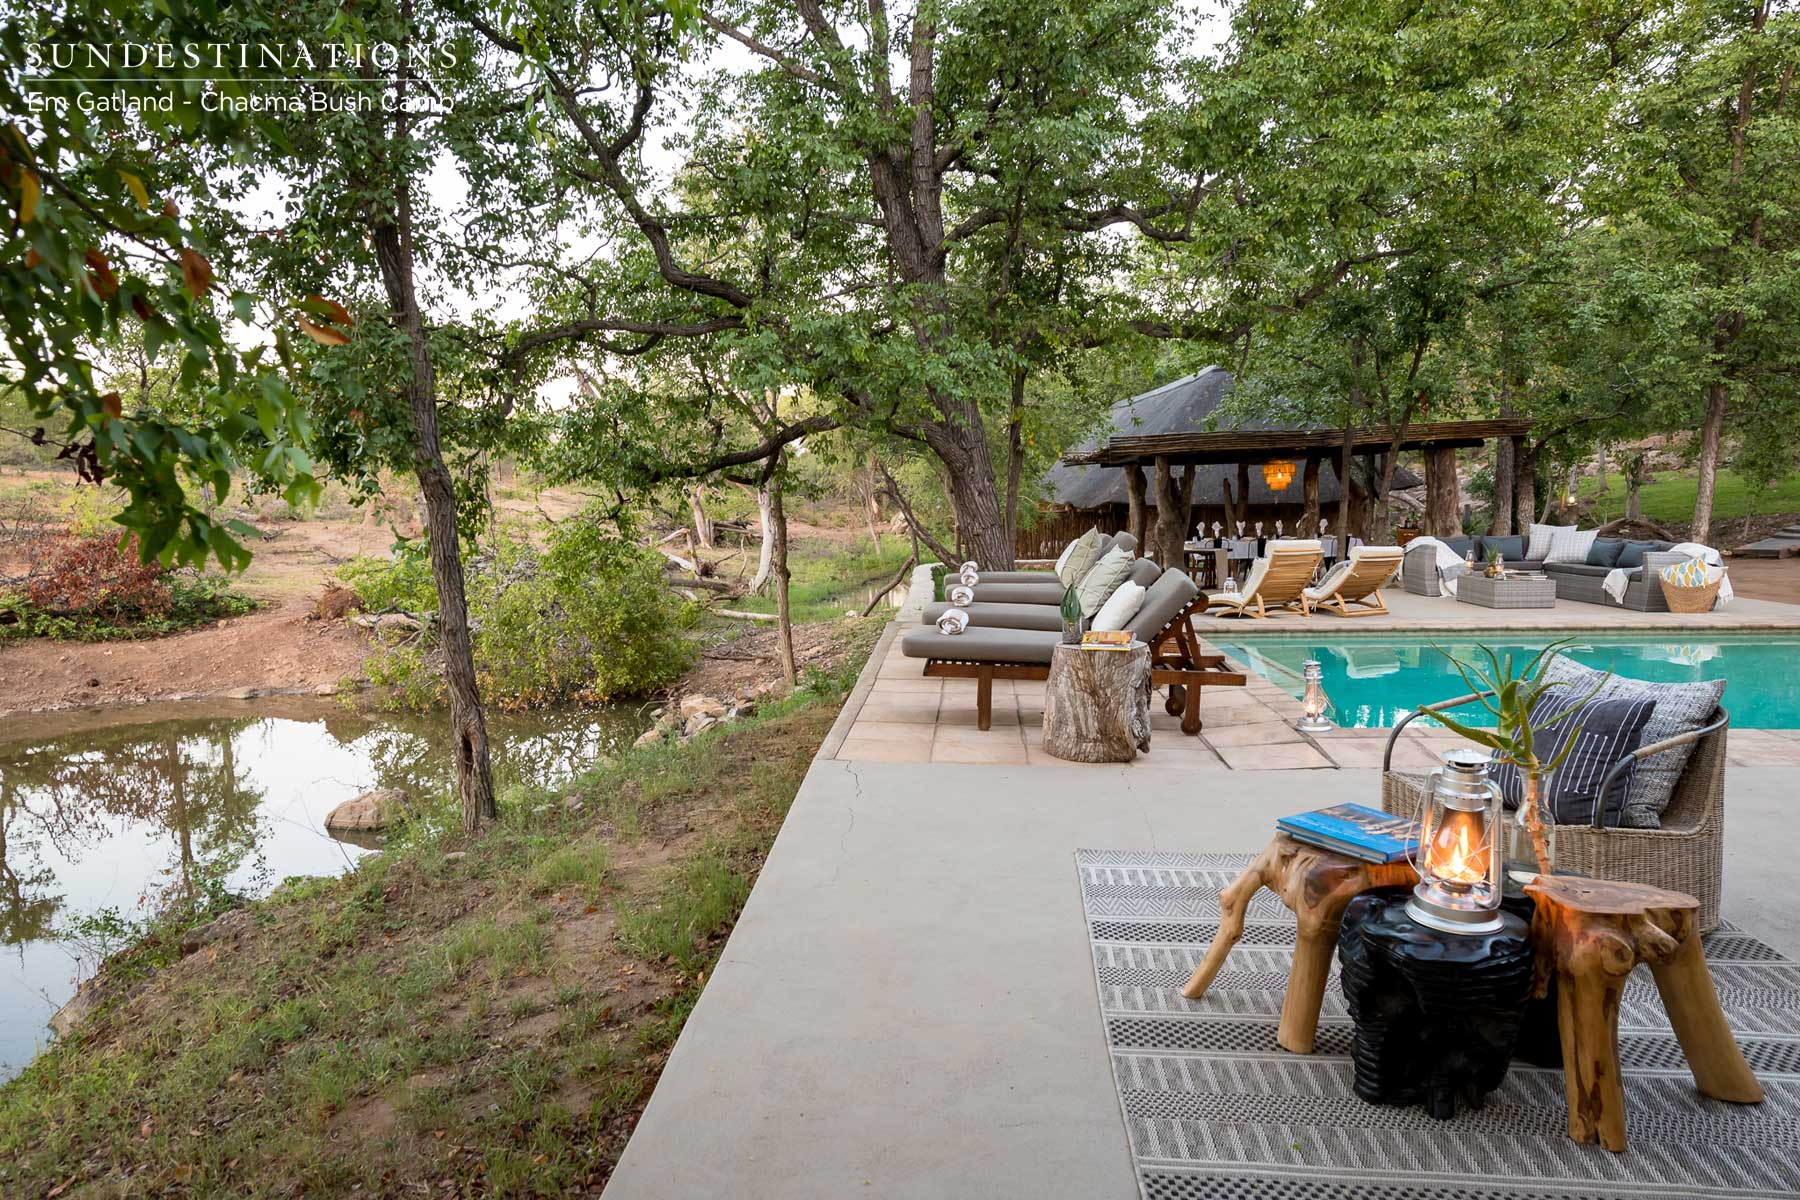 Maseke's Chacma Bush Camp : Videos and Images of the Refurb